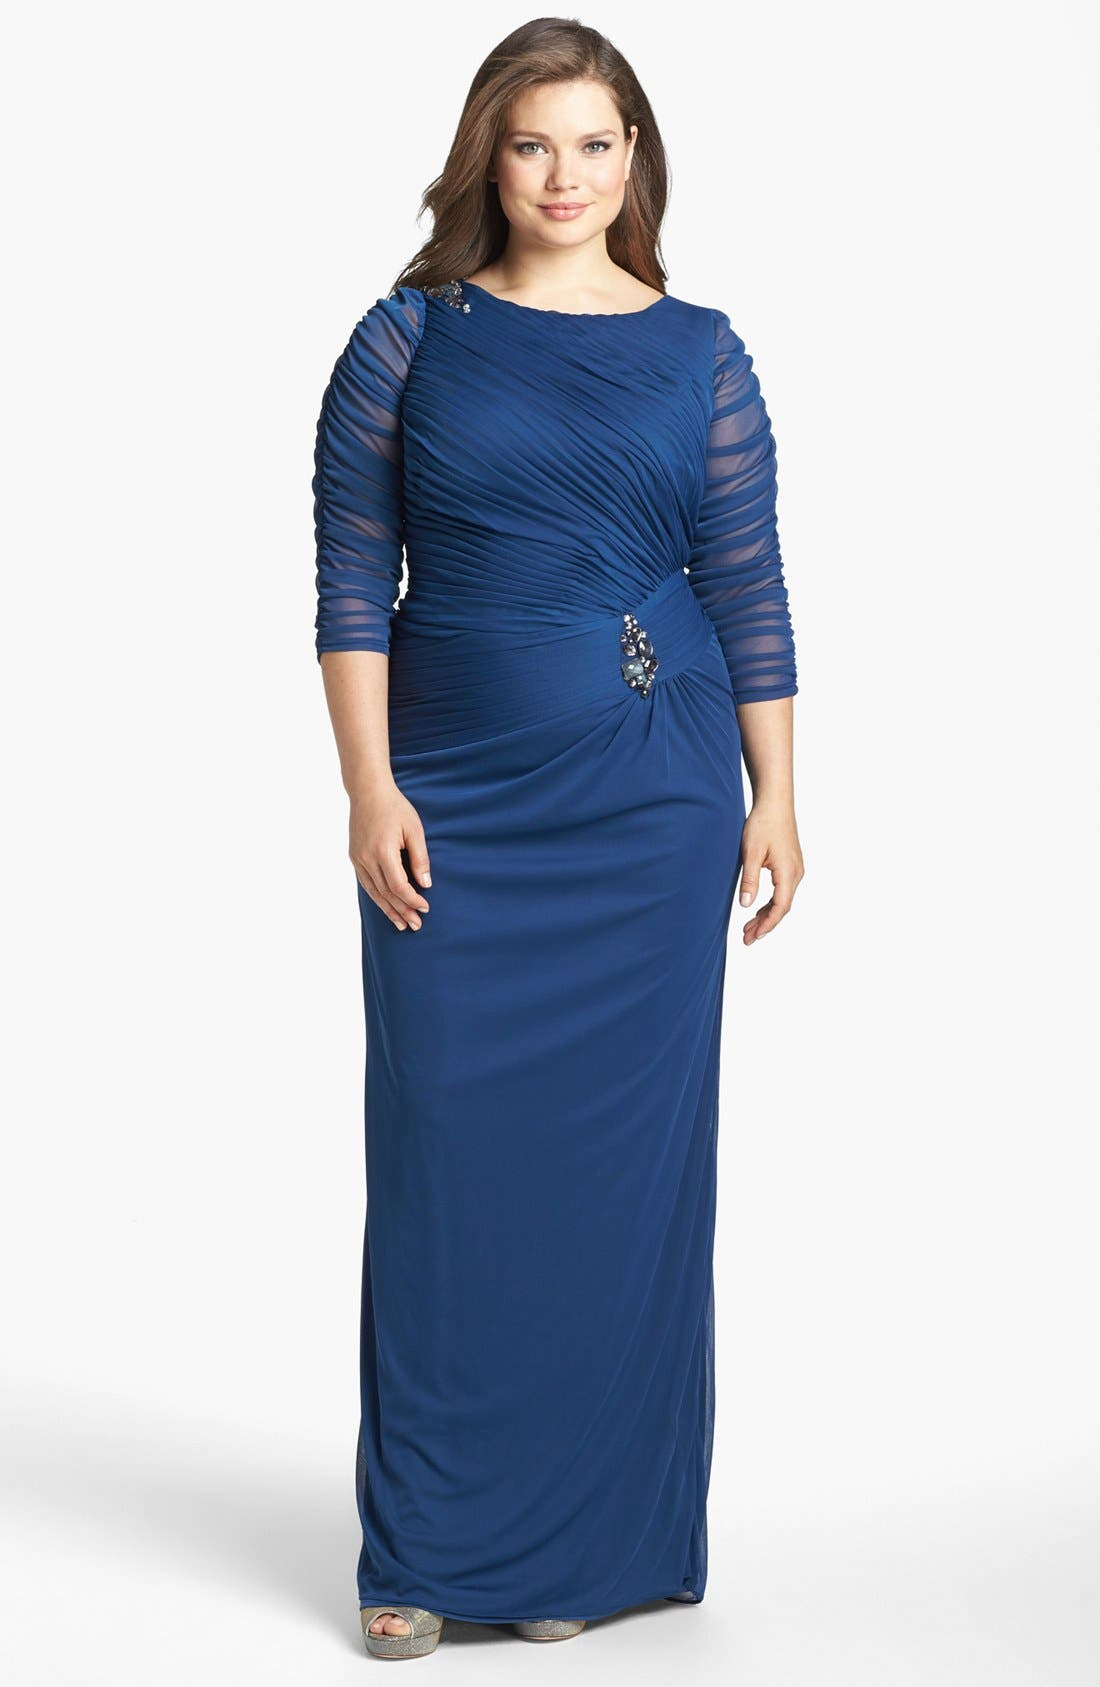 Alternate Image 1 Selected - Adrianna Papell Brooch Embellished Ruched Mesh Gown (Plus Size)